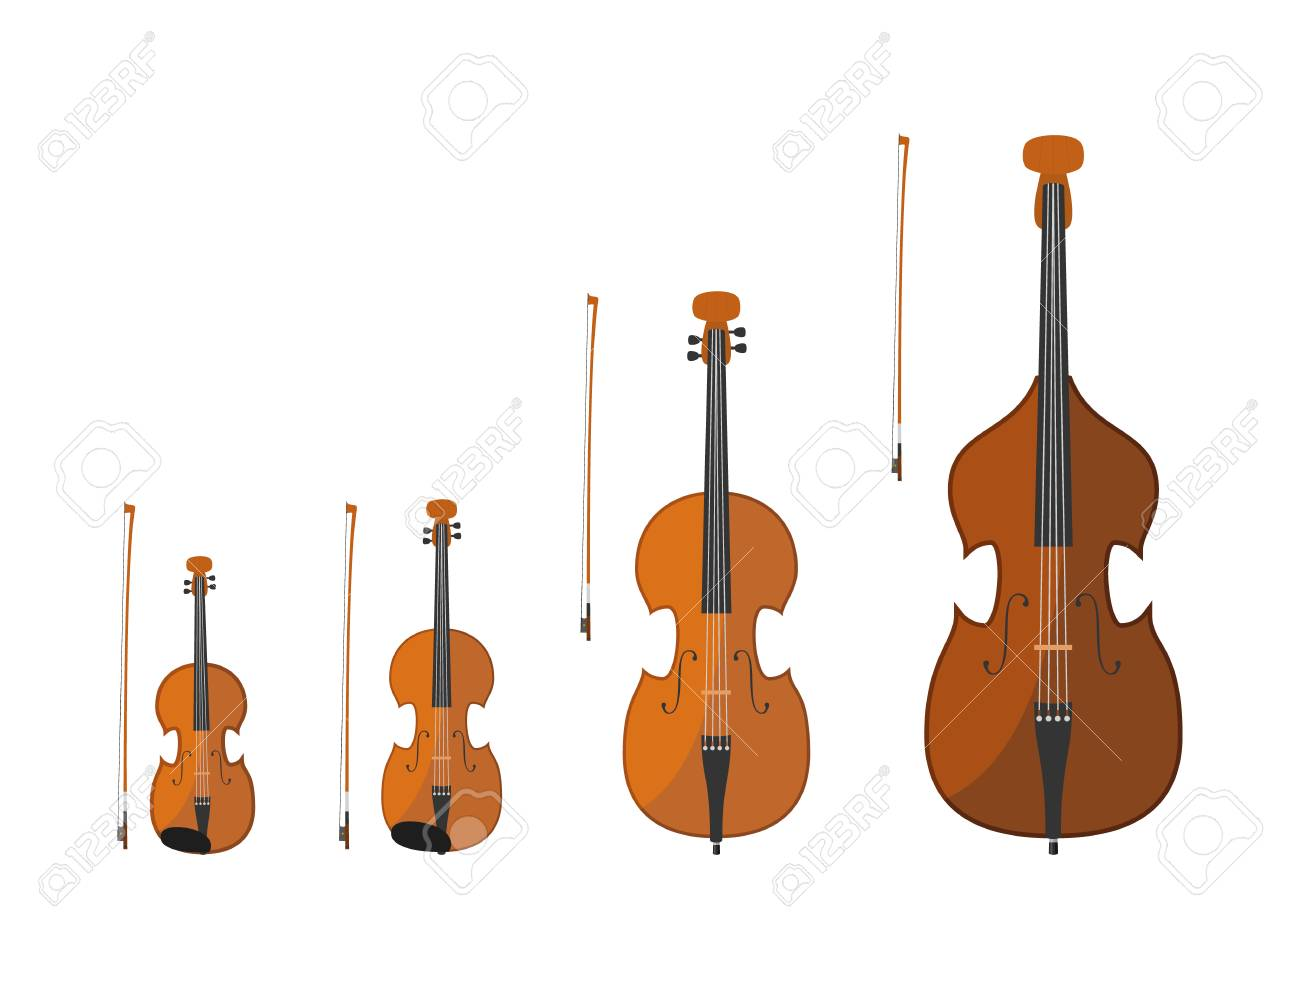 Vector illustration set of string instruments playing by bowing...